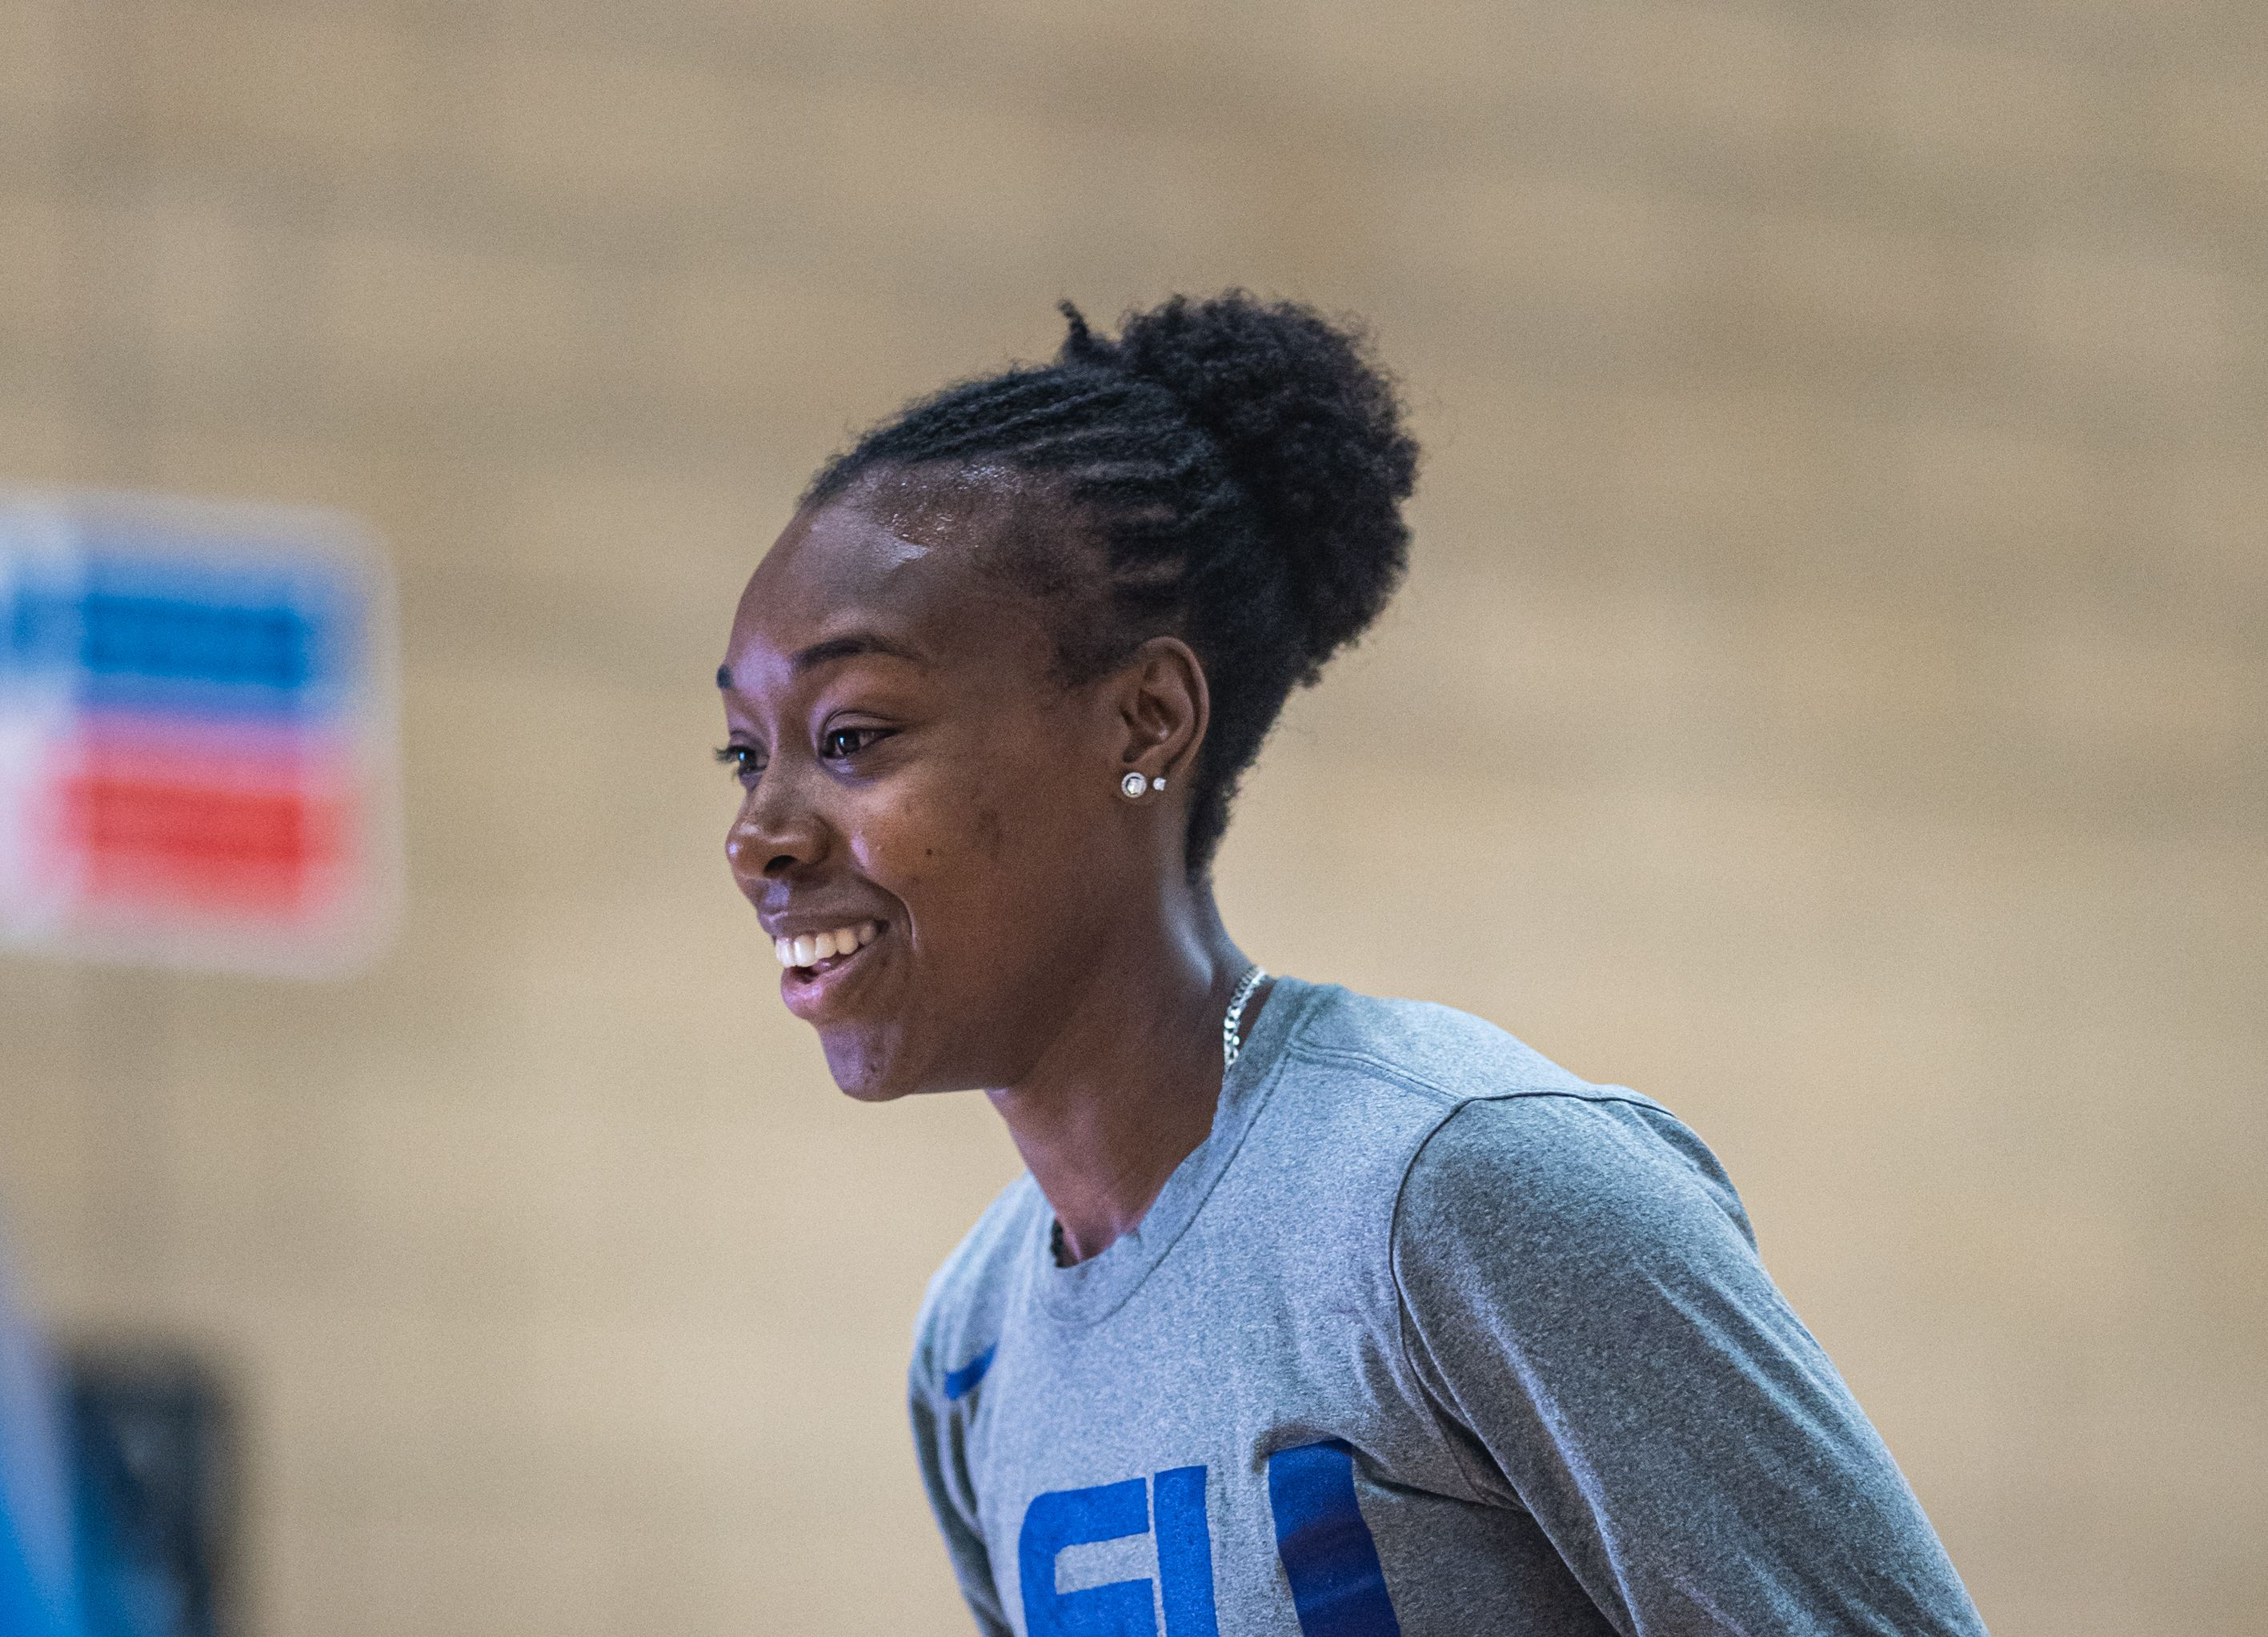 Shanice Beckford-Norton excited for EuroCup campaign